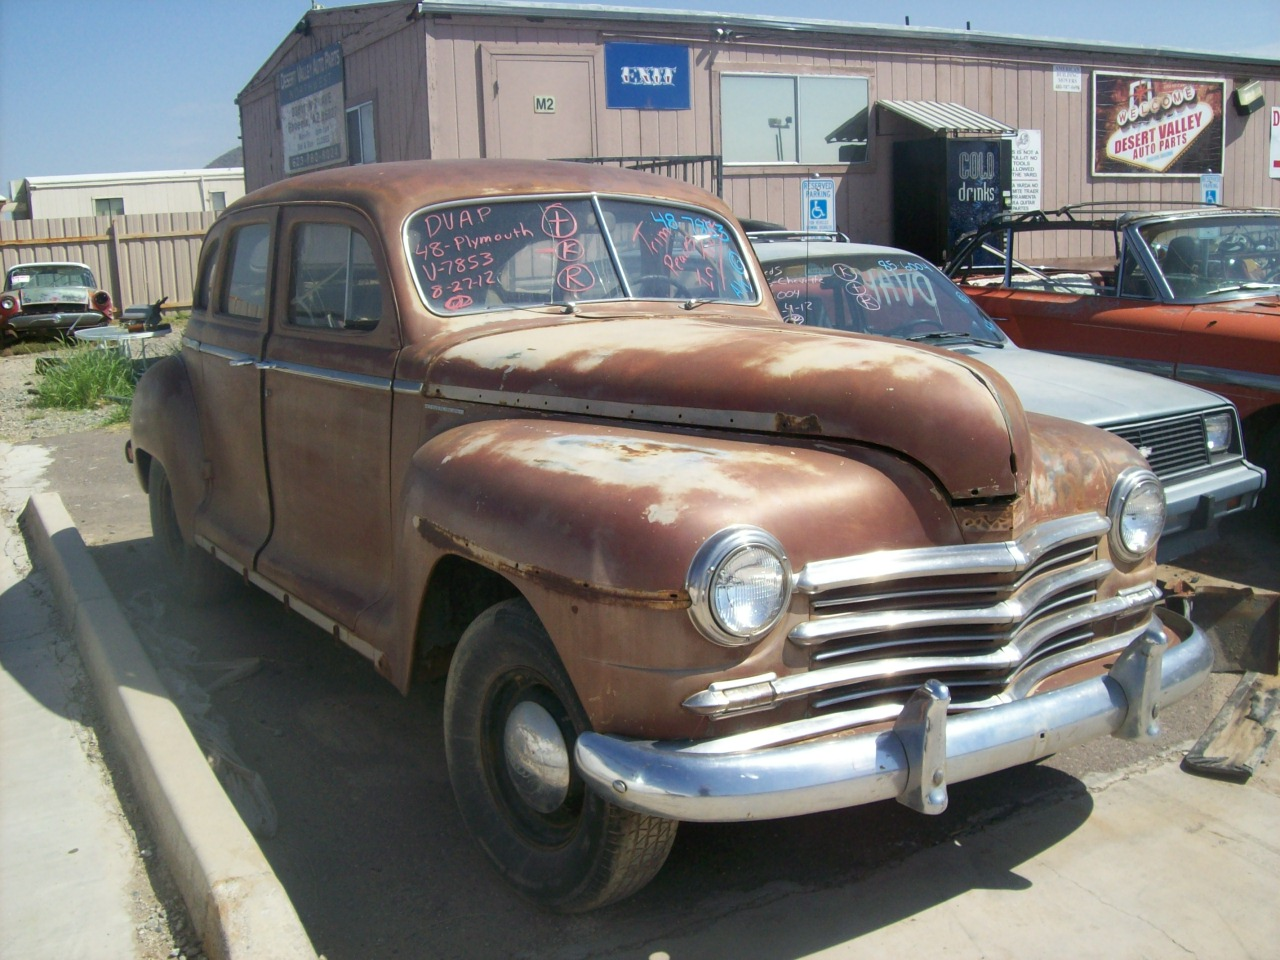 1948 Plymouth Deluxe 48pl7853c Desert Valley Auto Parts